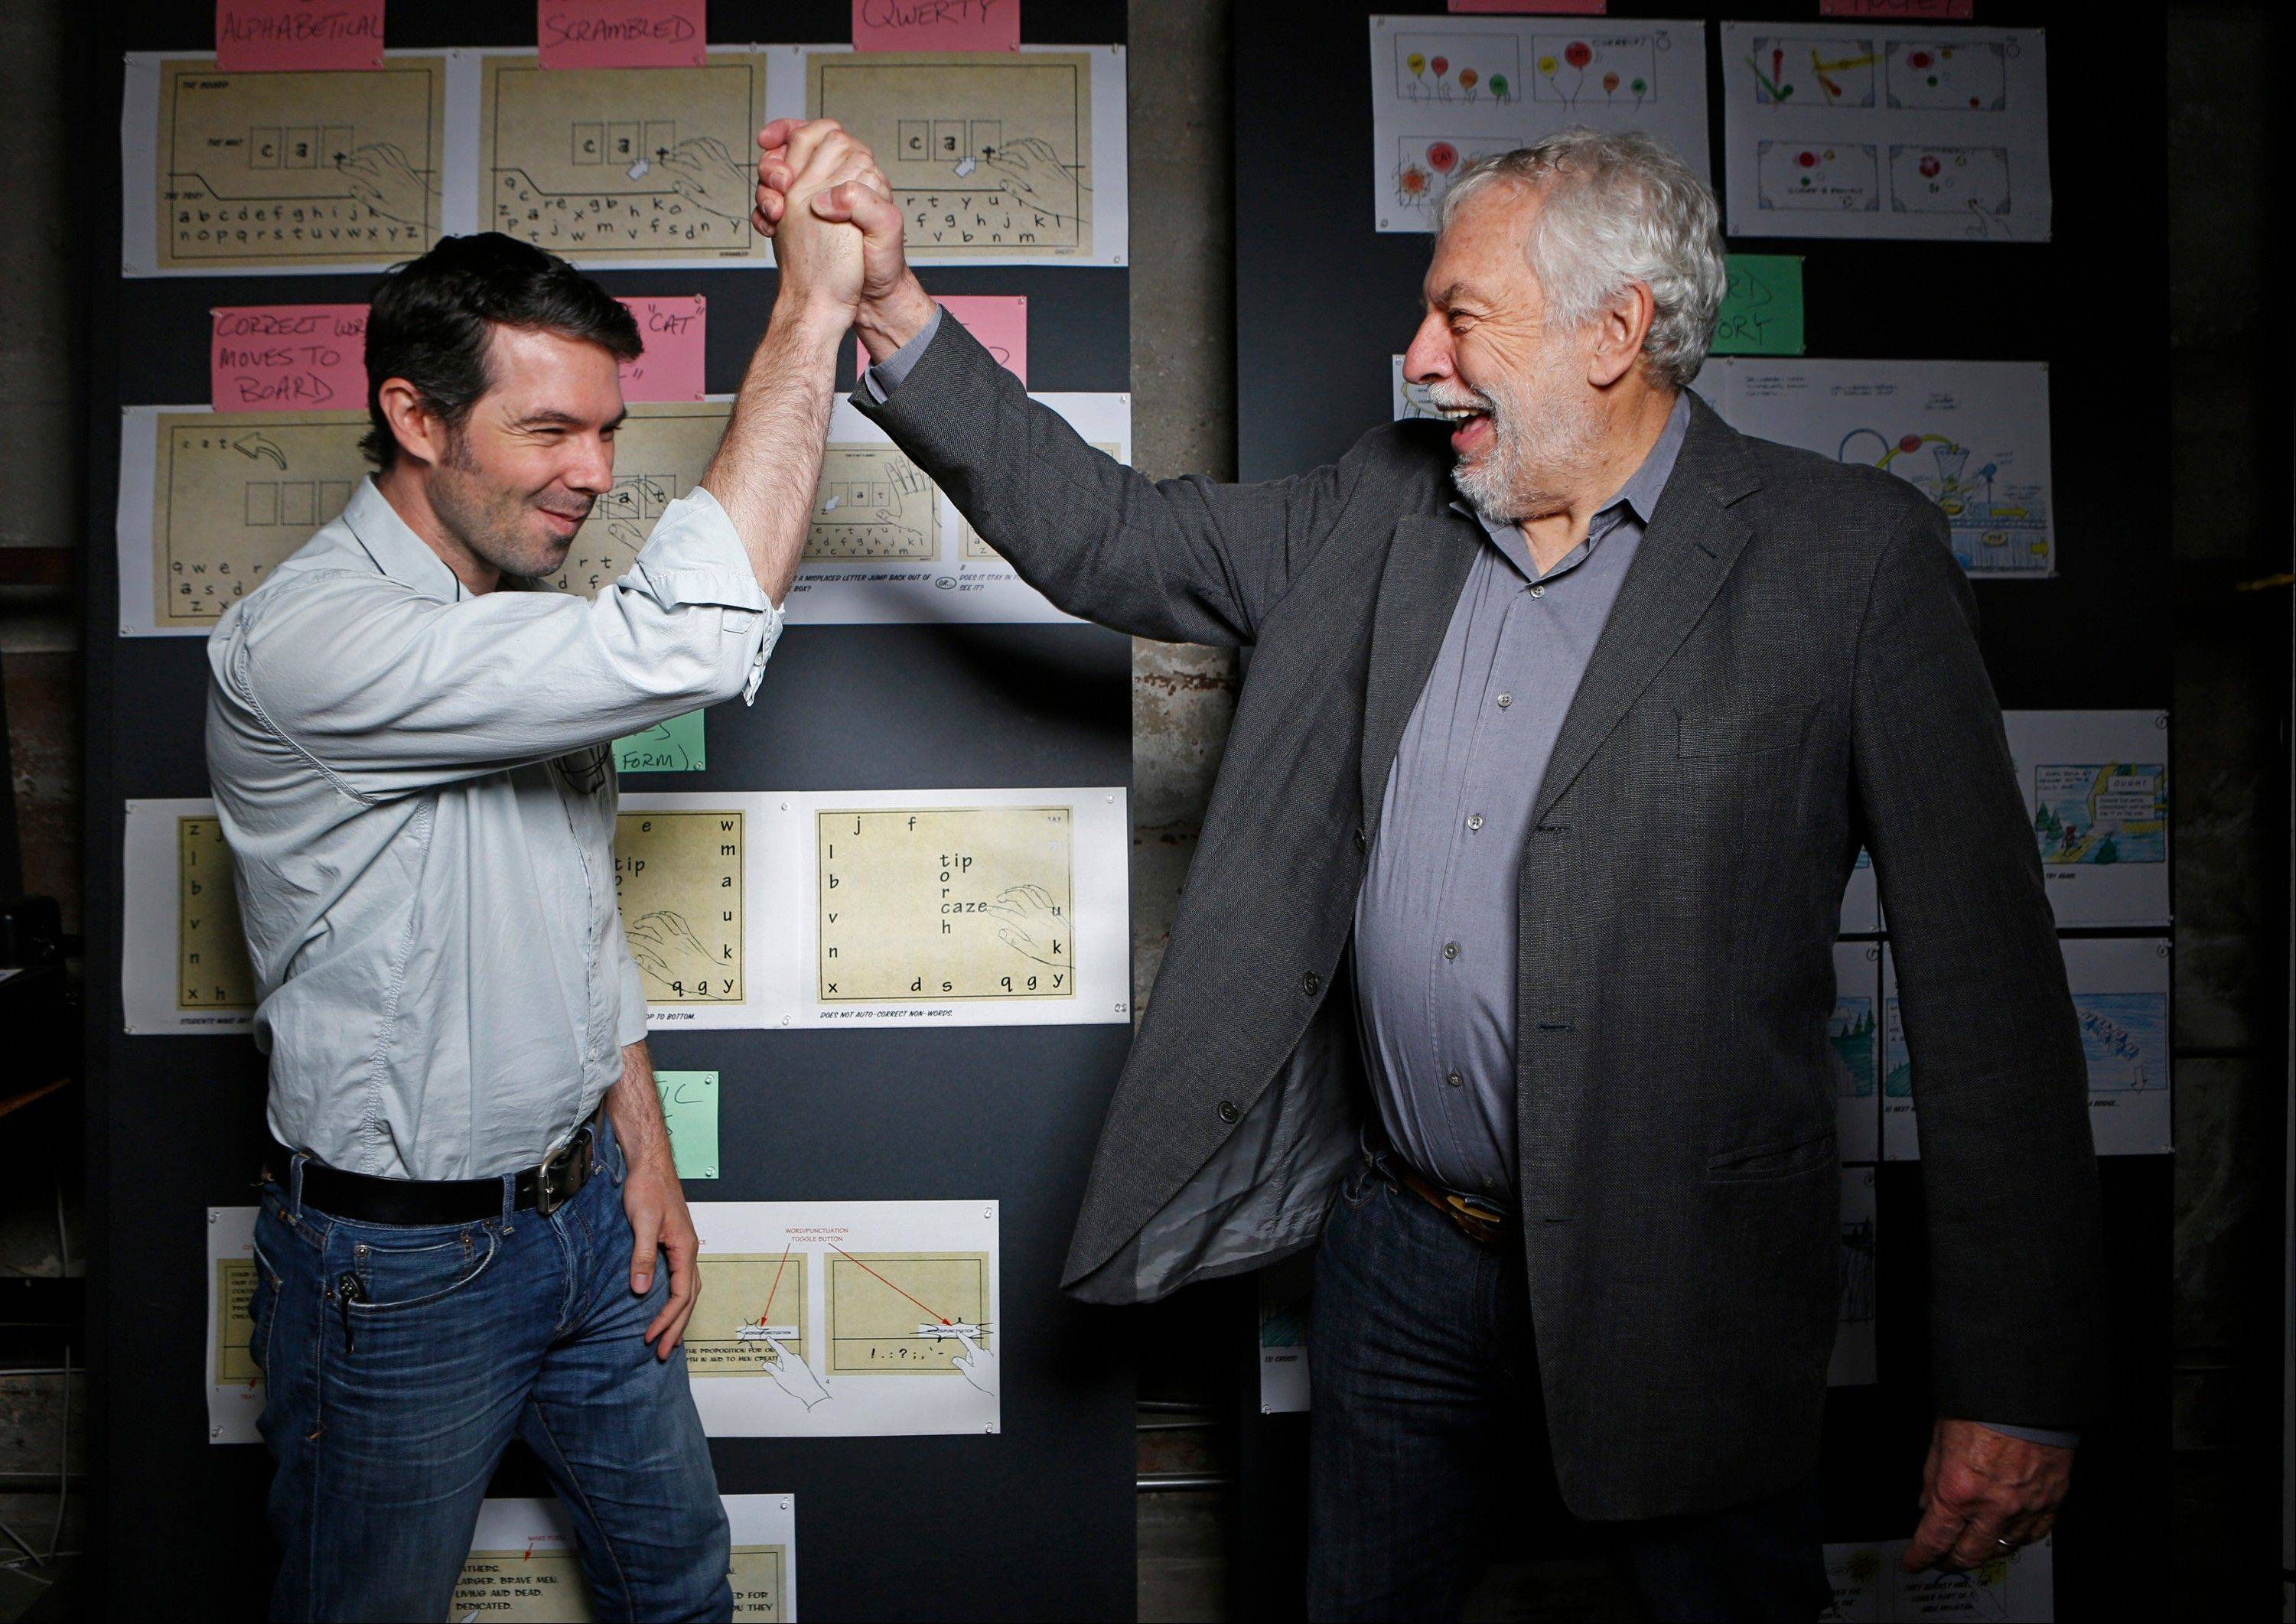 "In this photo taken Wednesday, Mar. 20, 2013, Nolan Bushnell, the founder of Atari, right cheers his son, Brent Bushnell, CEO of ""Two-Bits-Circus,"" a Los Angeles idea factory focused on software, hardware and machines. Nolan Bushnell was the first guy to give Steve Jobs his first full-time job in Silicon Valley at Atari. Two Bit Circus is a unique hybrid of intellectuals, creatives and performers."